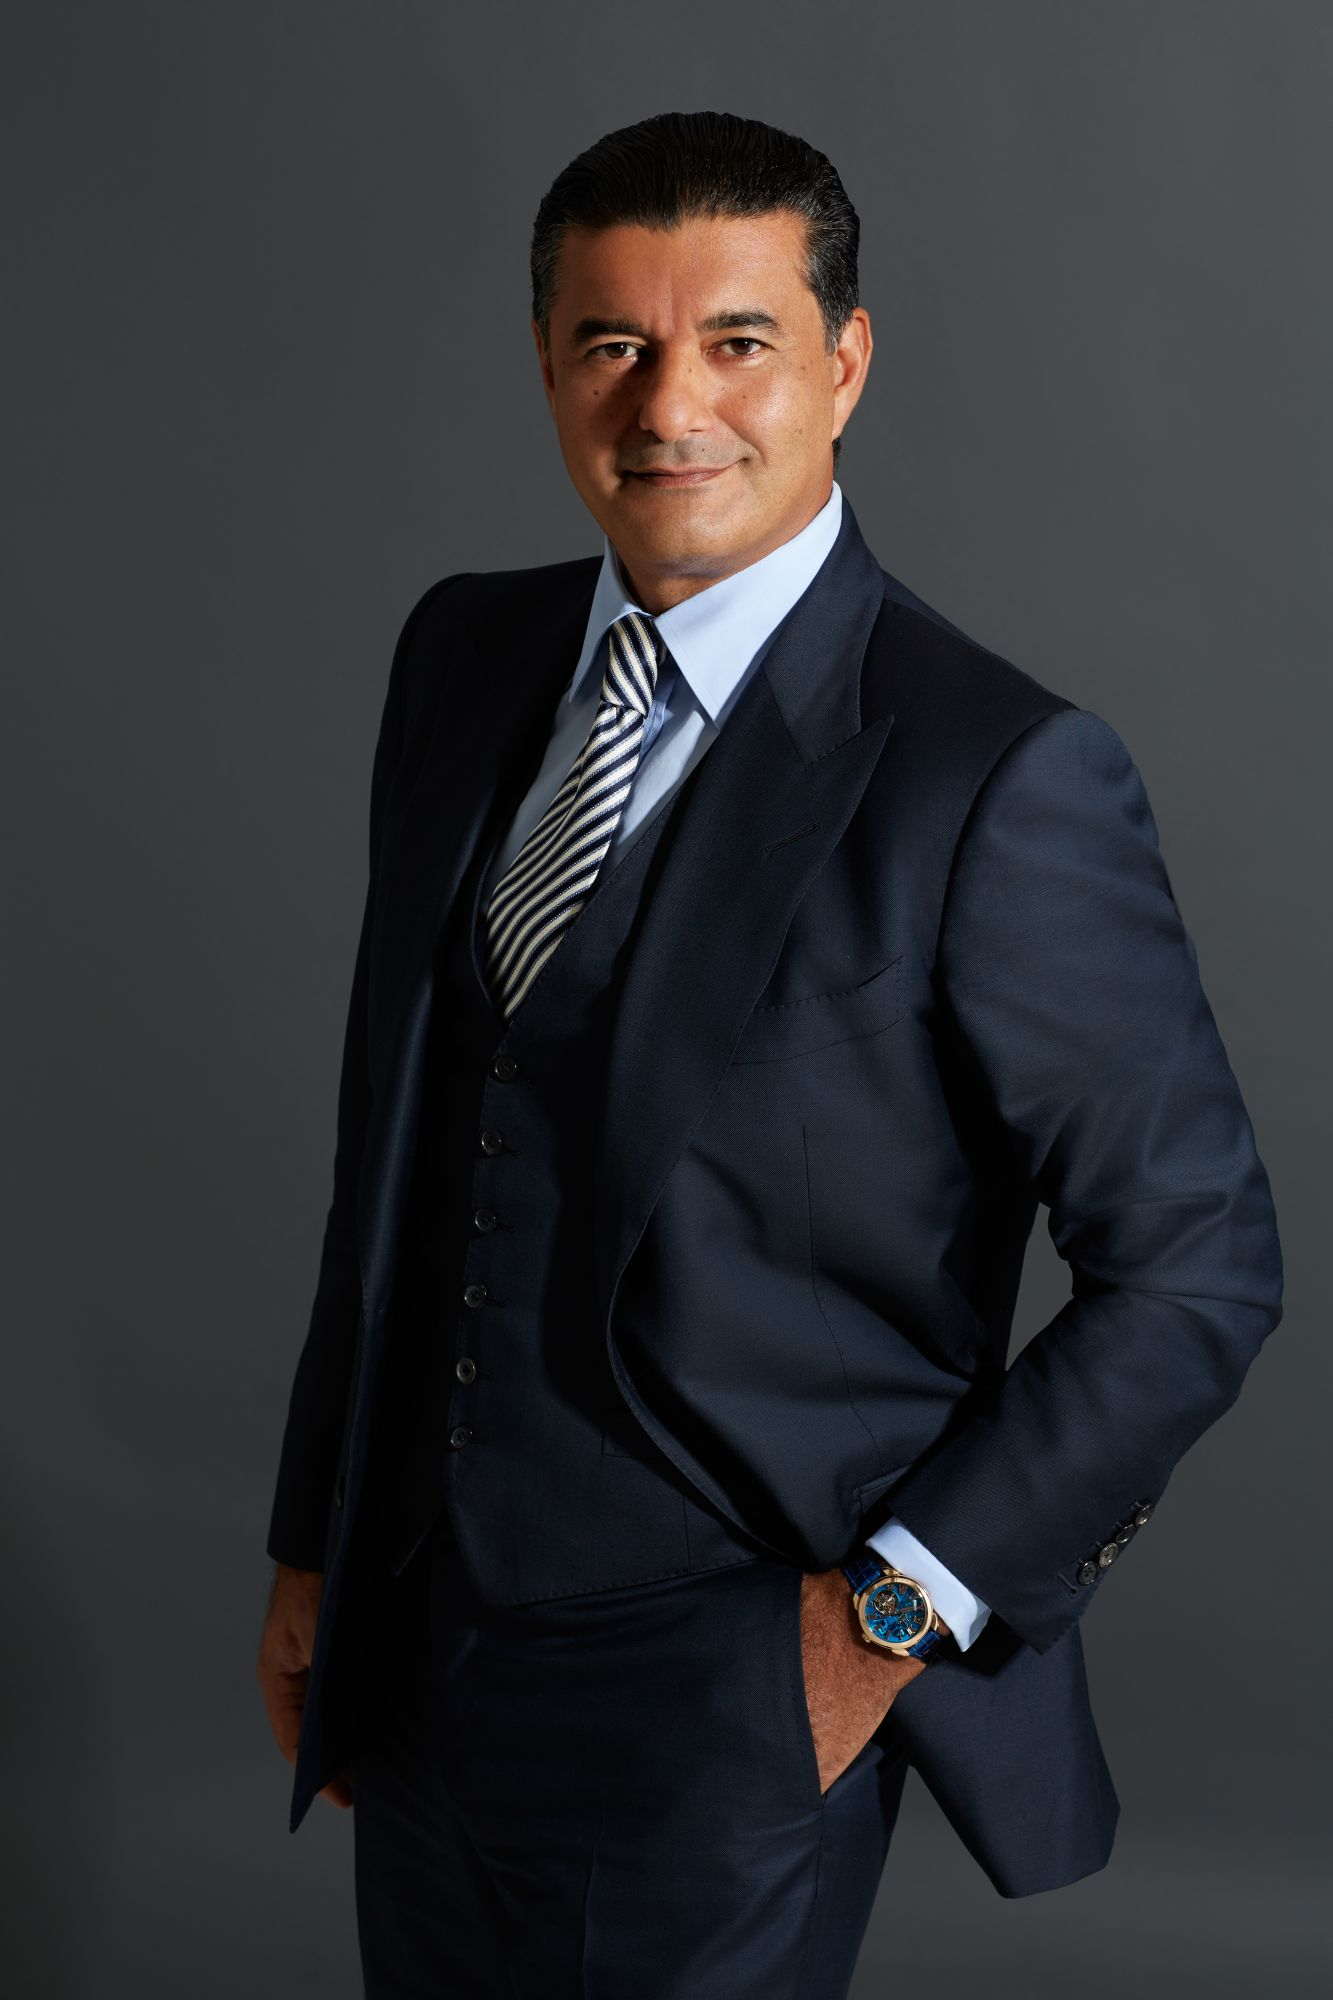 Meet Jacob Arabo, The Billionaire Who Makes The Most Expensive Watches